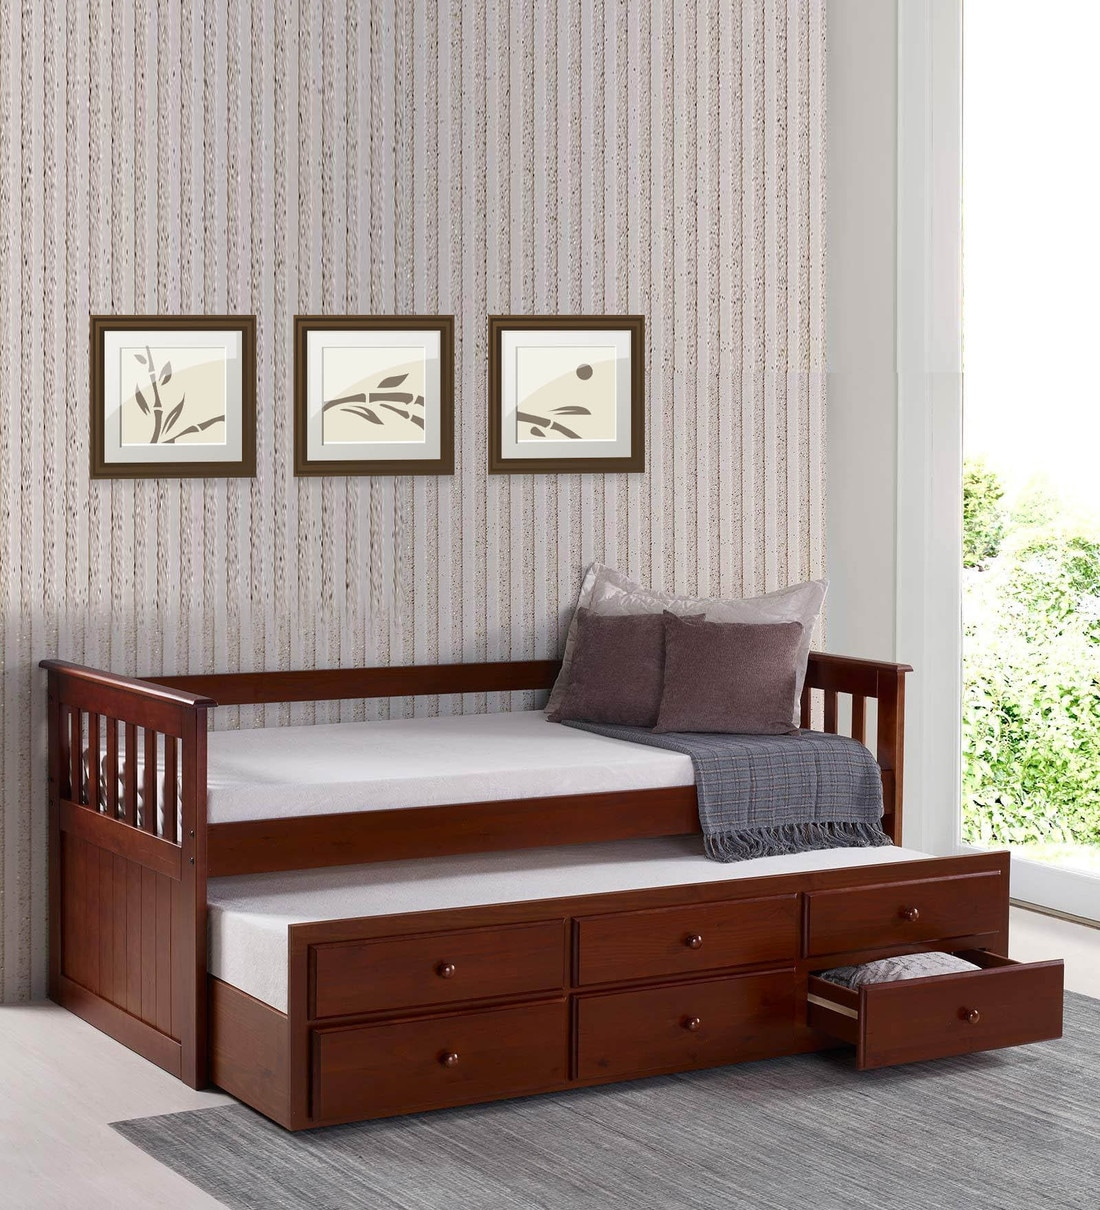 Buy Mccaptain Single Bed With Pull Out Bed Drawers By Mollycoddle Online Kids Single Beds Kids Furniture Kids Furniture Pepperfry Product